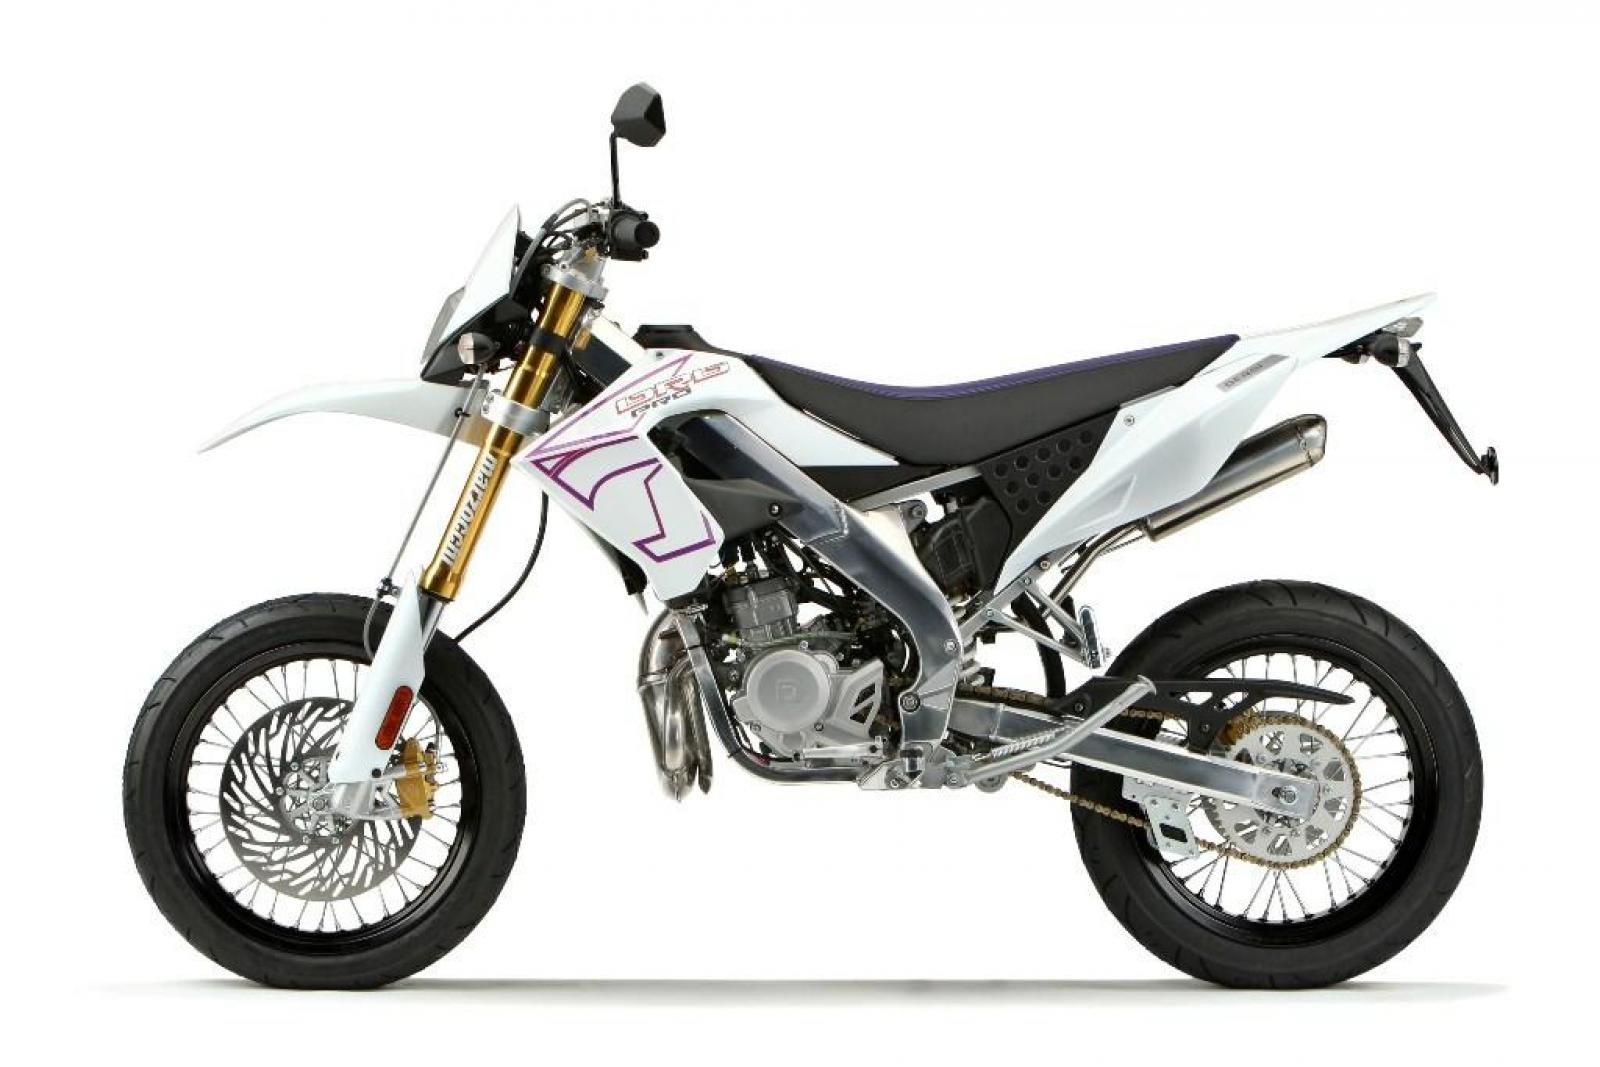 Derbi Senda DRD Evo 50 SM Limited Edition images #71233